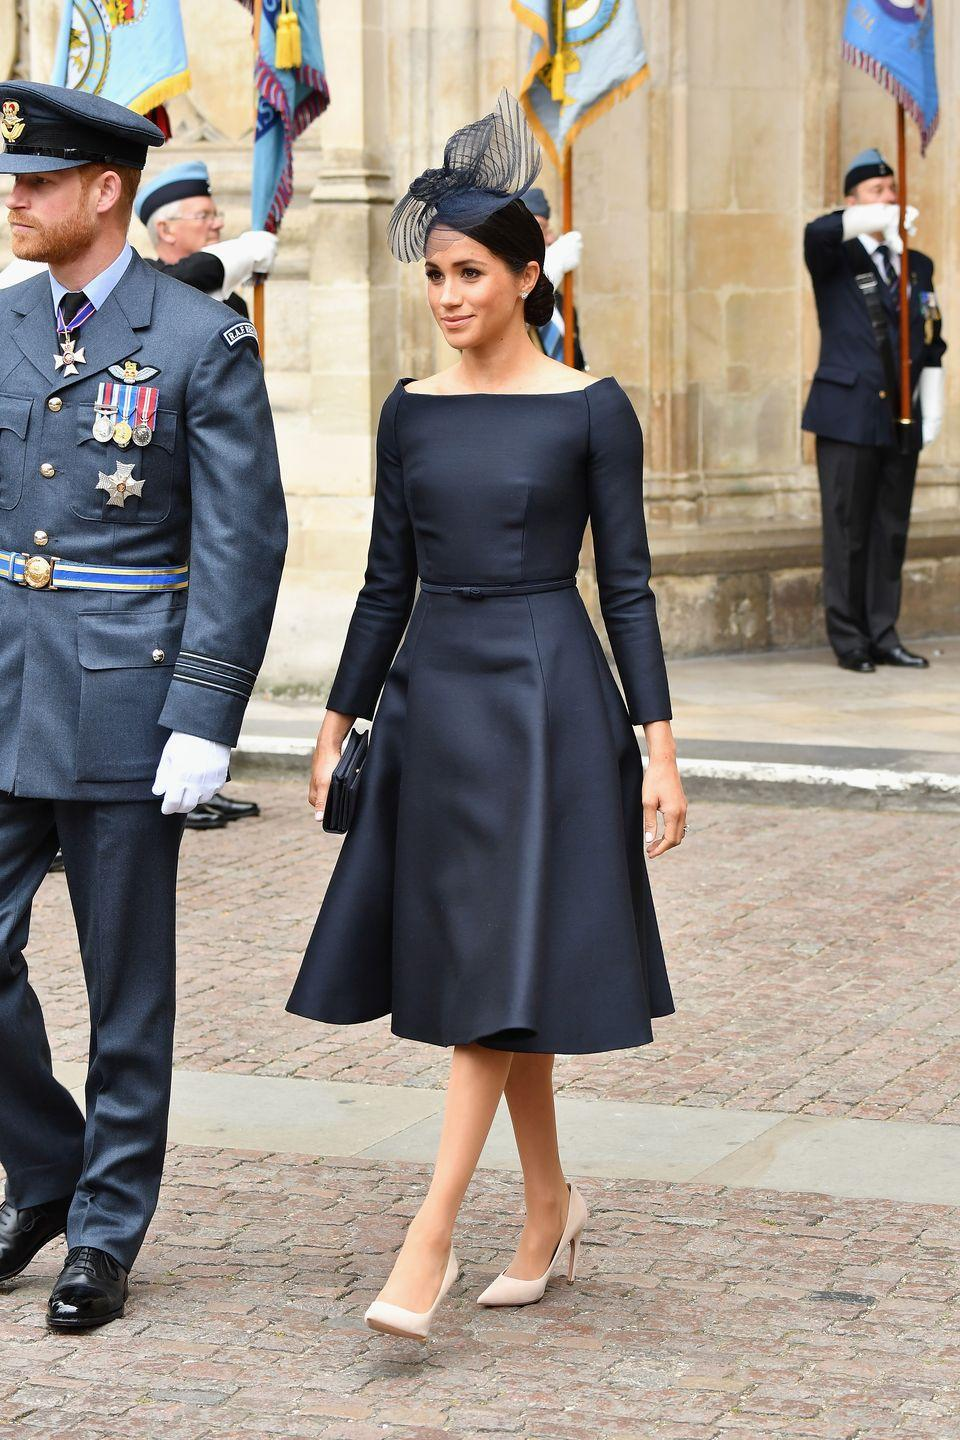 "<p><span class=""redactor-unlink"">Meghan channeled </span><a href=""https://www.townandcountrymag.com/style/fashion-trends/a22095663/meghan-markle-raf-100-anniversary/"" rel=""nofollow noopener"" target=""_blank"" data-ylk=""slk:Audrey Hepburn in honor of the Royal Air Force's 100th anniversary."" class=""link rapid-noclick-resp"">Audrey Hepburn in honor of the Royal Air Force's 100th anniversary.</a> <span class=""redactor-unlink"">The Duchess wore a bespoke Dior A-line dress</span> with a boatneck (just like her wedding dress!) with a matching Stephen Jones hat. Meghan also wore a pair of Cartier earrings. </p>"